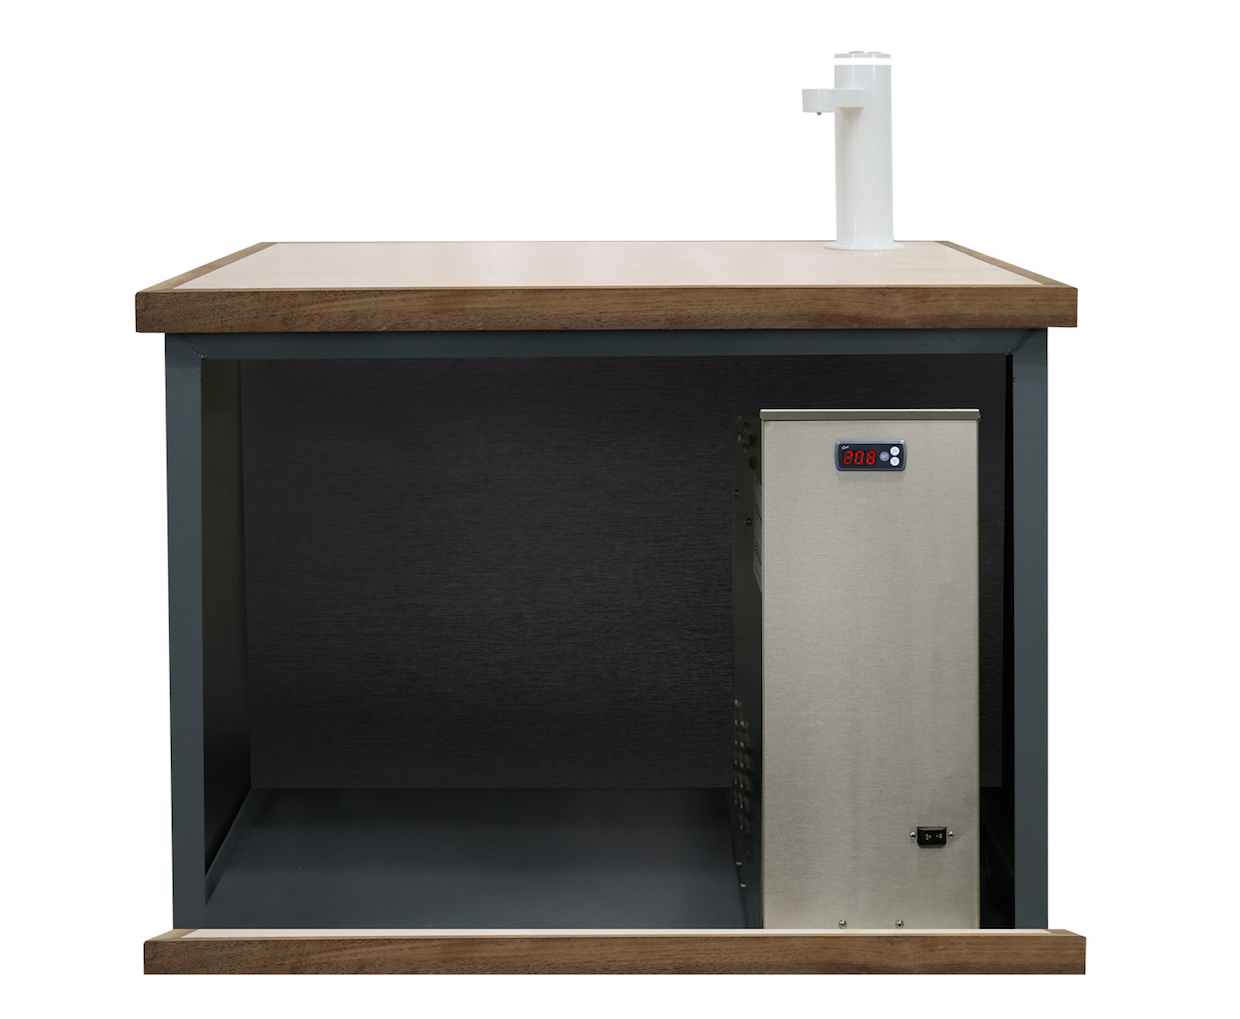 Curtis Corninth hot water dispenser pourovers